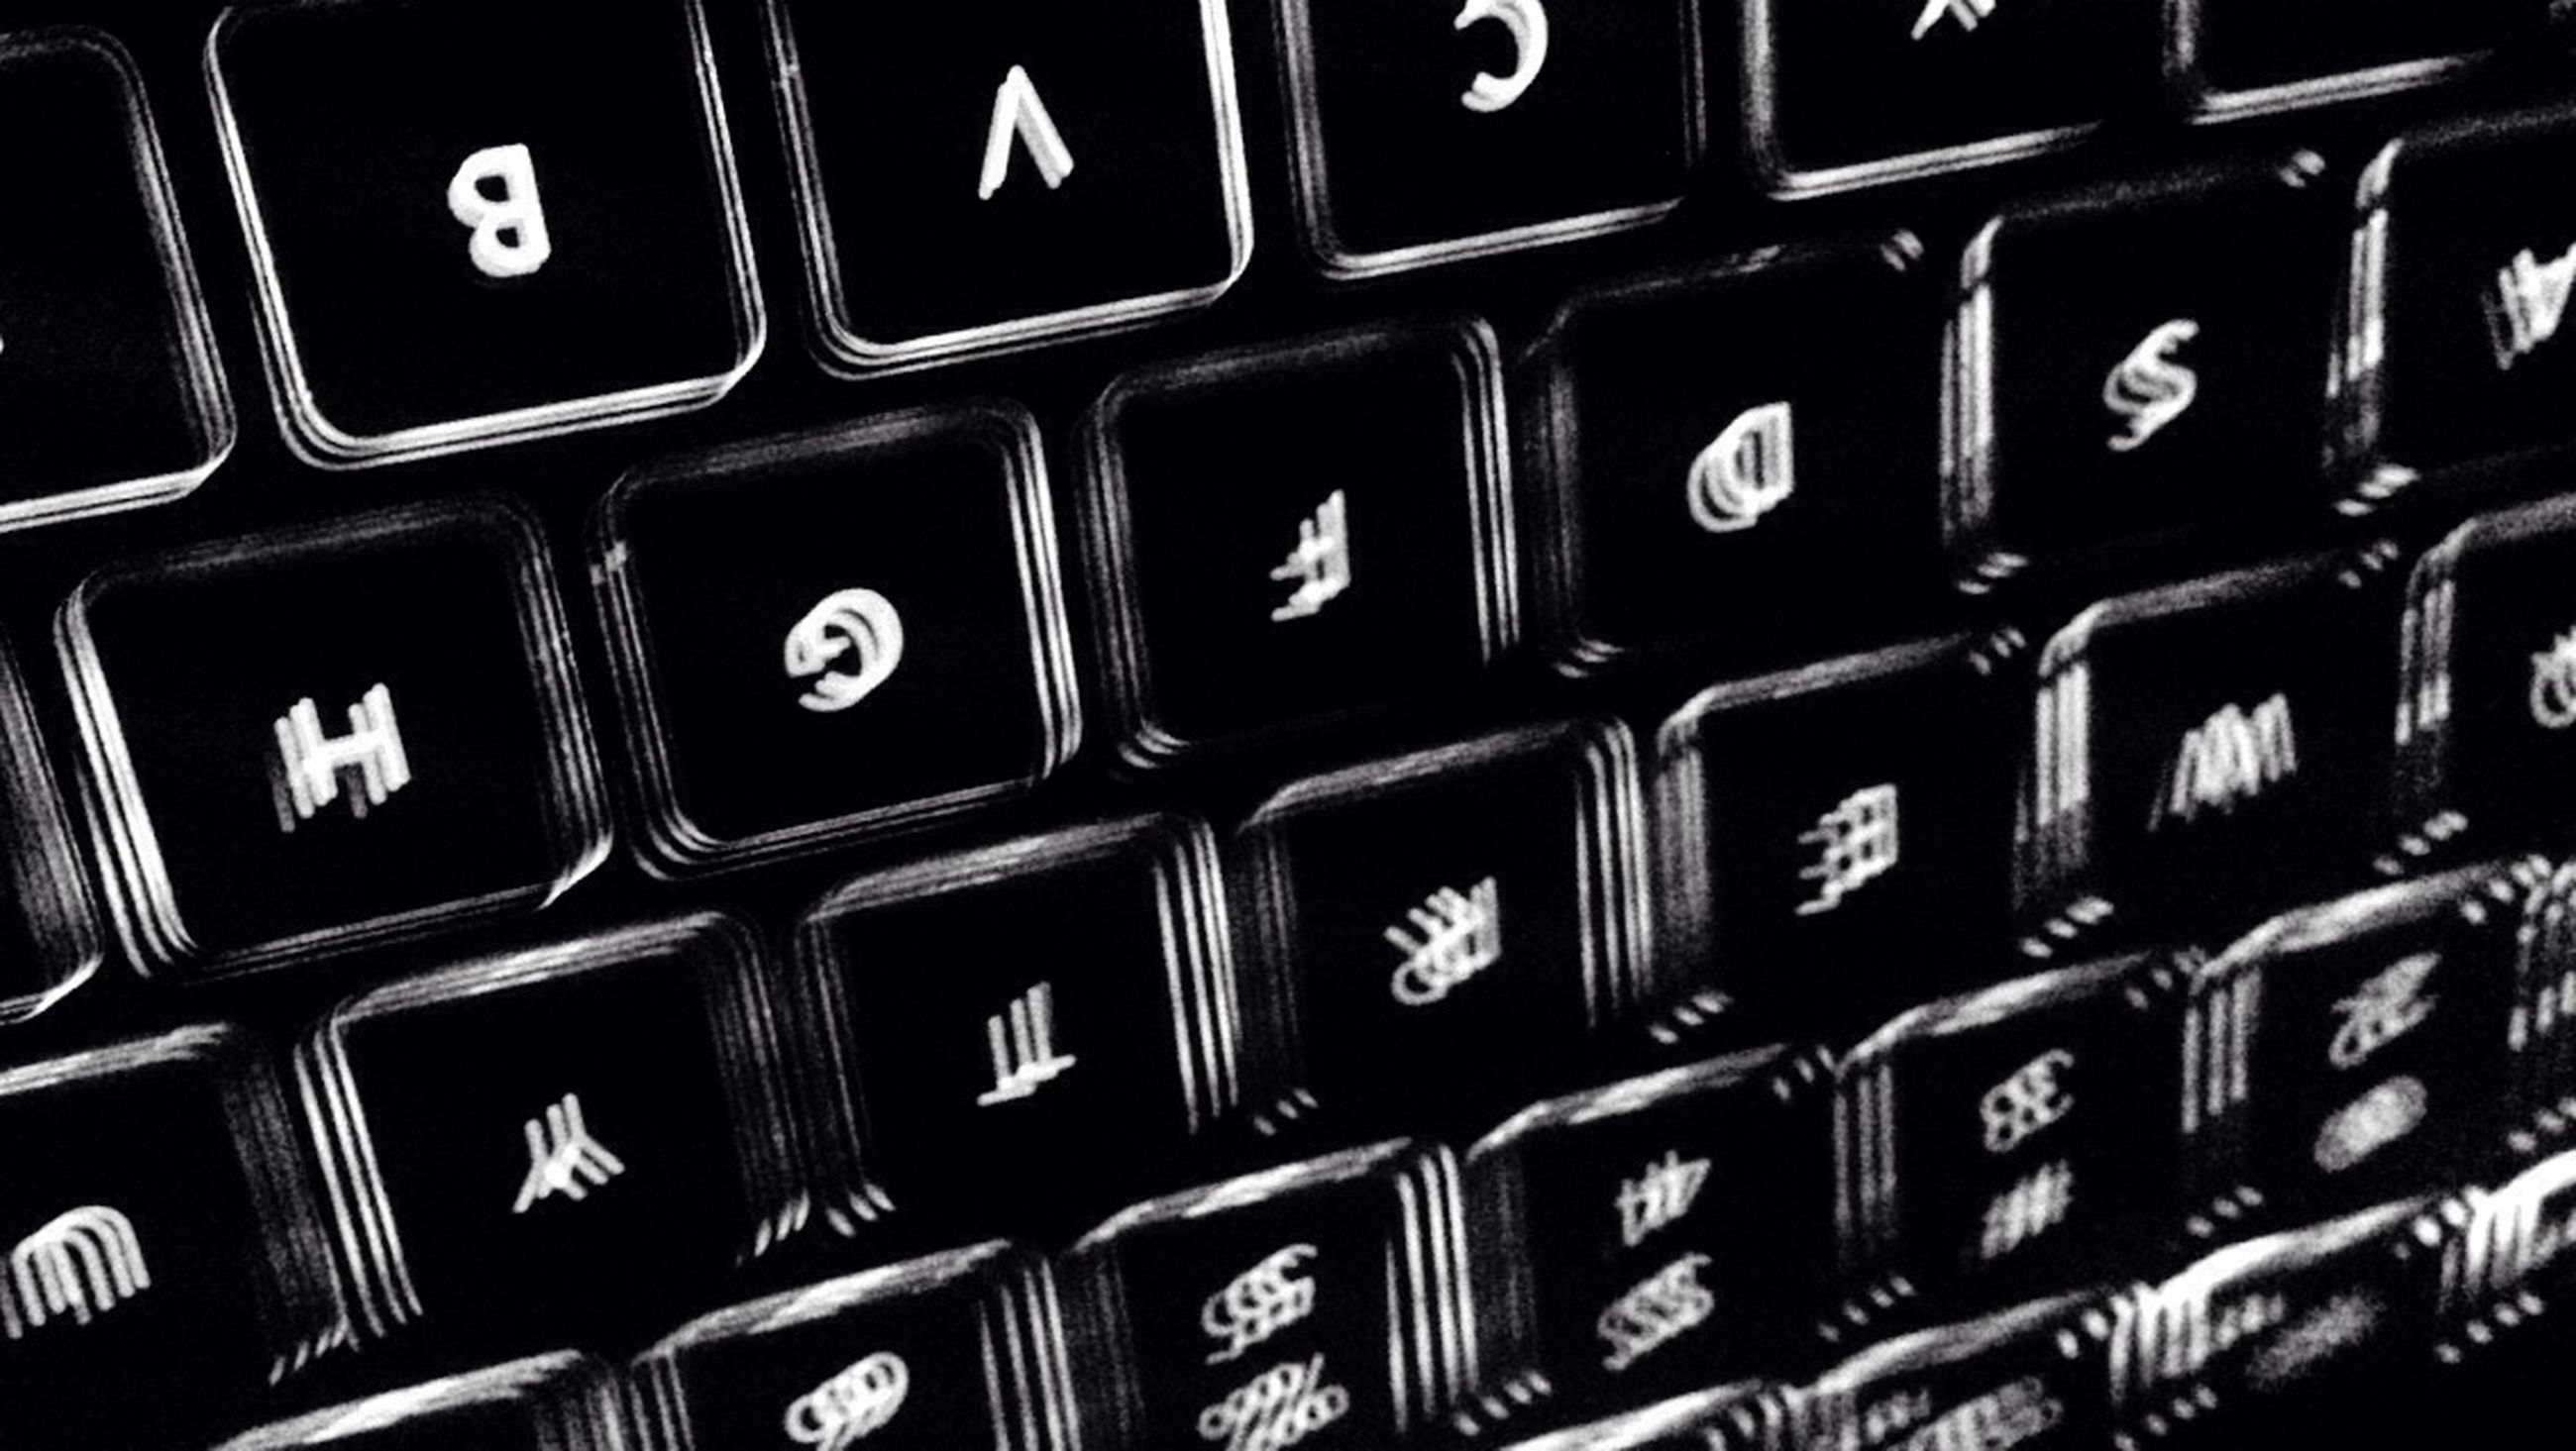 indoors, full frame, backgrounds, number, communication, text, close-up, western script, alphabet, repetition, abundance, technology, large group of objects, capital letter, in a row, computer keyboard, pattern, no people, computer key, order